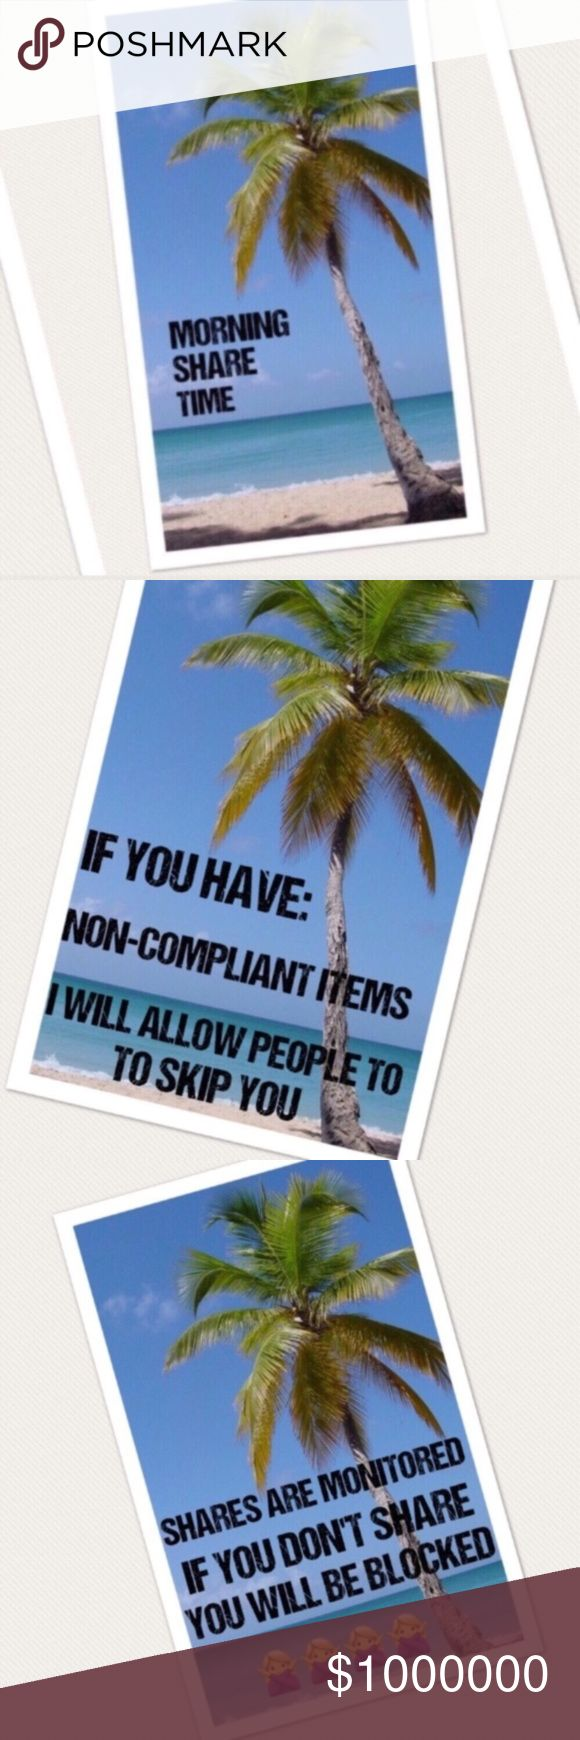 🌴🌴11/11 SAT SIGN UP🌴🌴 4 shares. No worries. Easy breezy.   🌴Please use Q&A listing for questions! No comments until sign up is closed.  🌴Sharing starts at 5am  🌴Sign up closes at 2pm est  🌴Posh compliant closets only. If you're not compliant you risk not being shared 🌴Please complete shares by midnight your time 🌴Mark your spot by using the first 3 characters of the last person you shared. Life gets busy!  Ex: ***back Happy Share Time!! Other